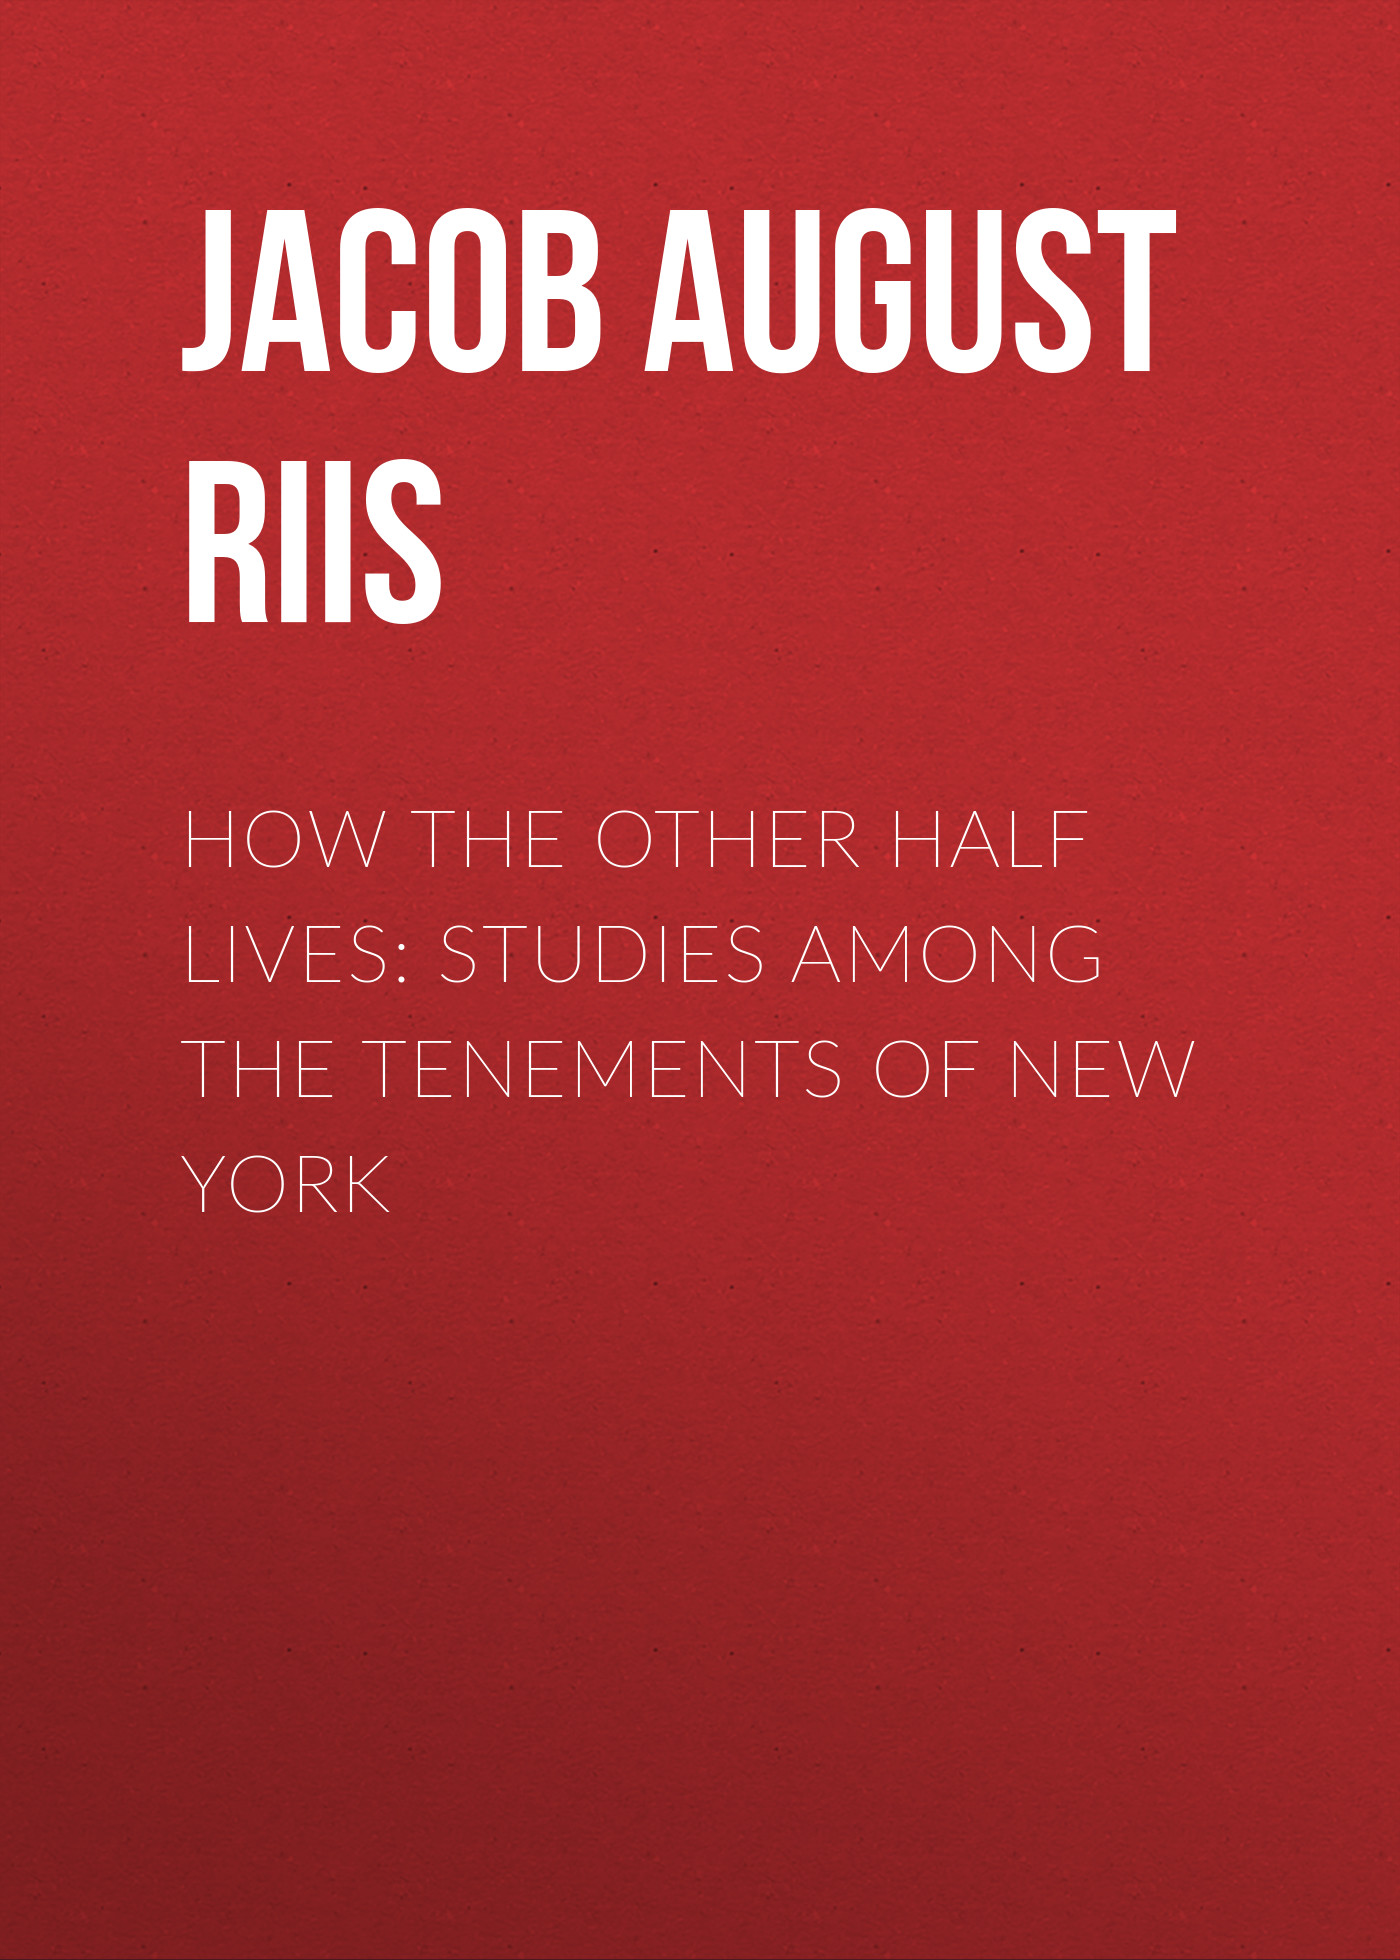 Jacob August Riis How the Other Half Lives: Studies Among the Tenements of New York